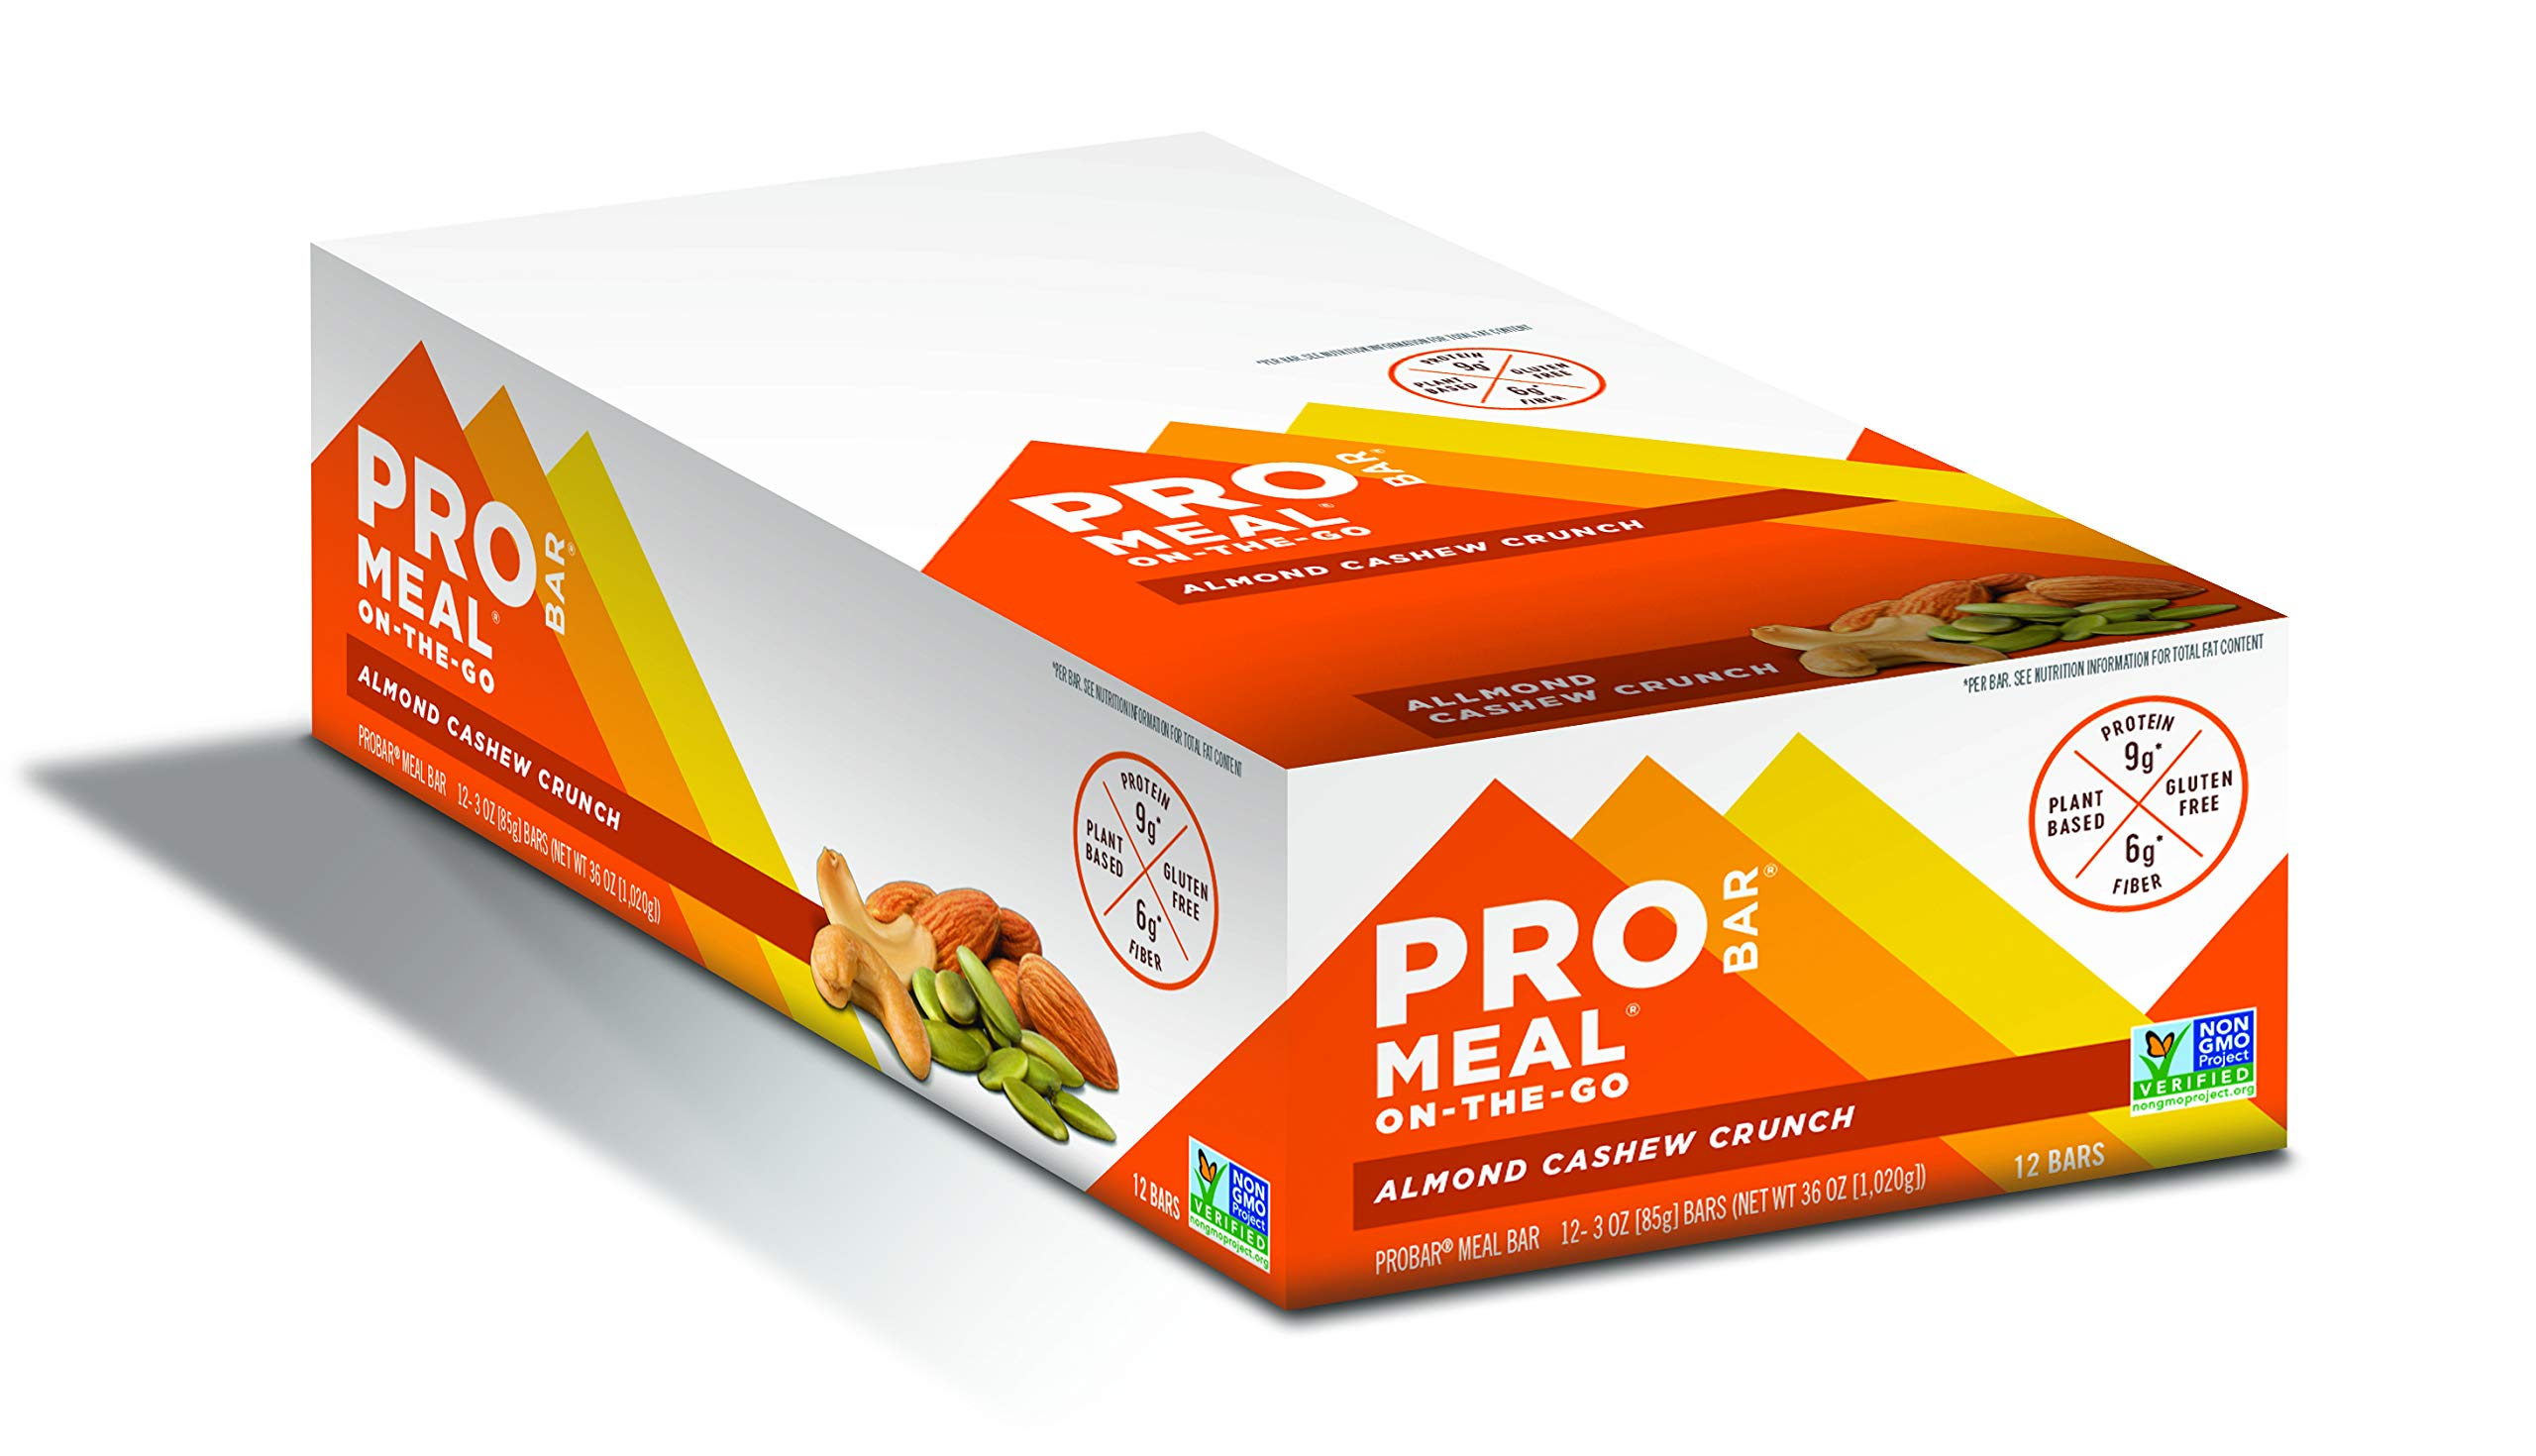 PROBAR - Meal Bar, Almond Cashew Crunch, Non-GMO, Gluten-Free, Certified Organic, Healthy, Plant-Based Whole Food Ingredients, Natural Energy (12 Count)